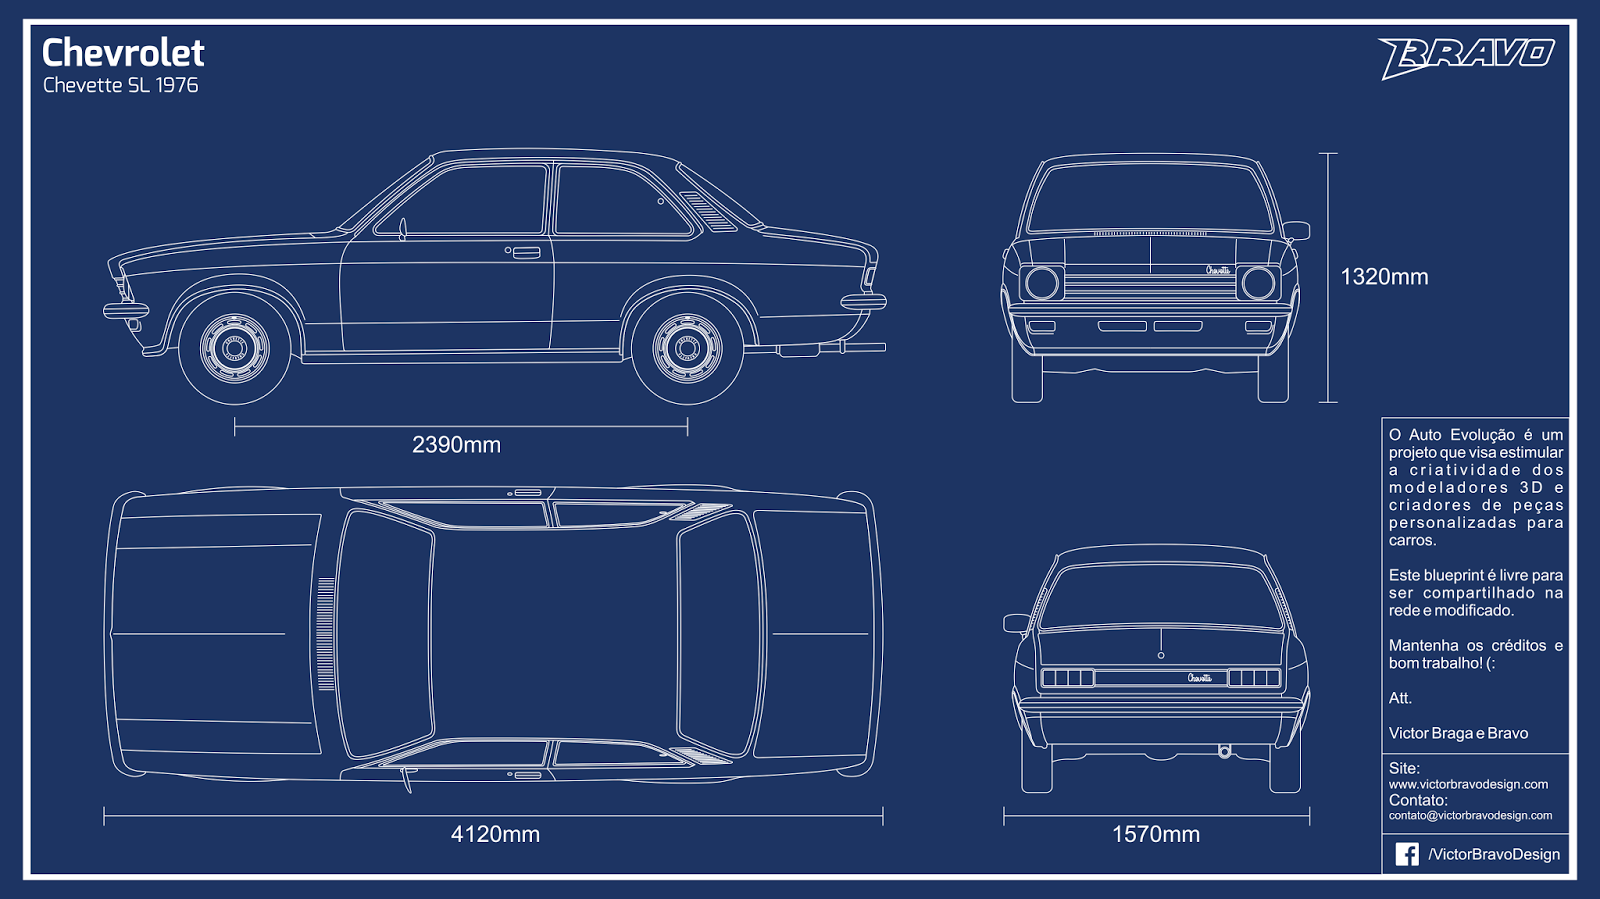 Imagem do blueprint do Chevrolet Chevette SL 1976